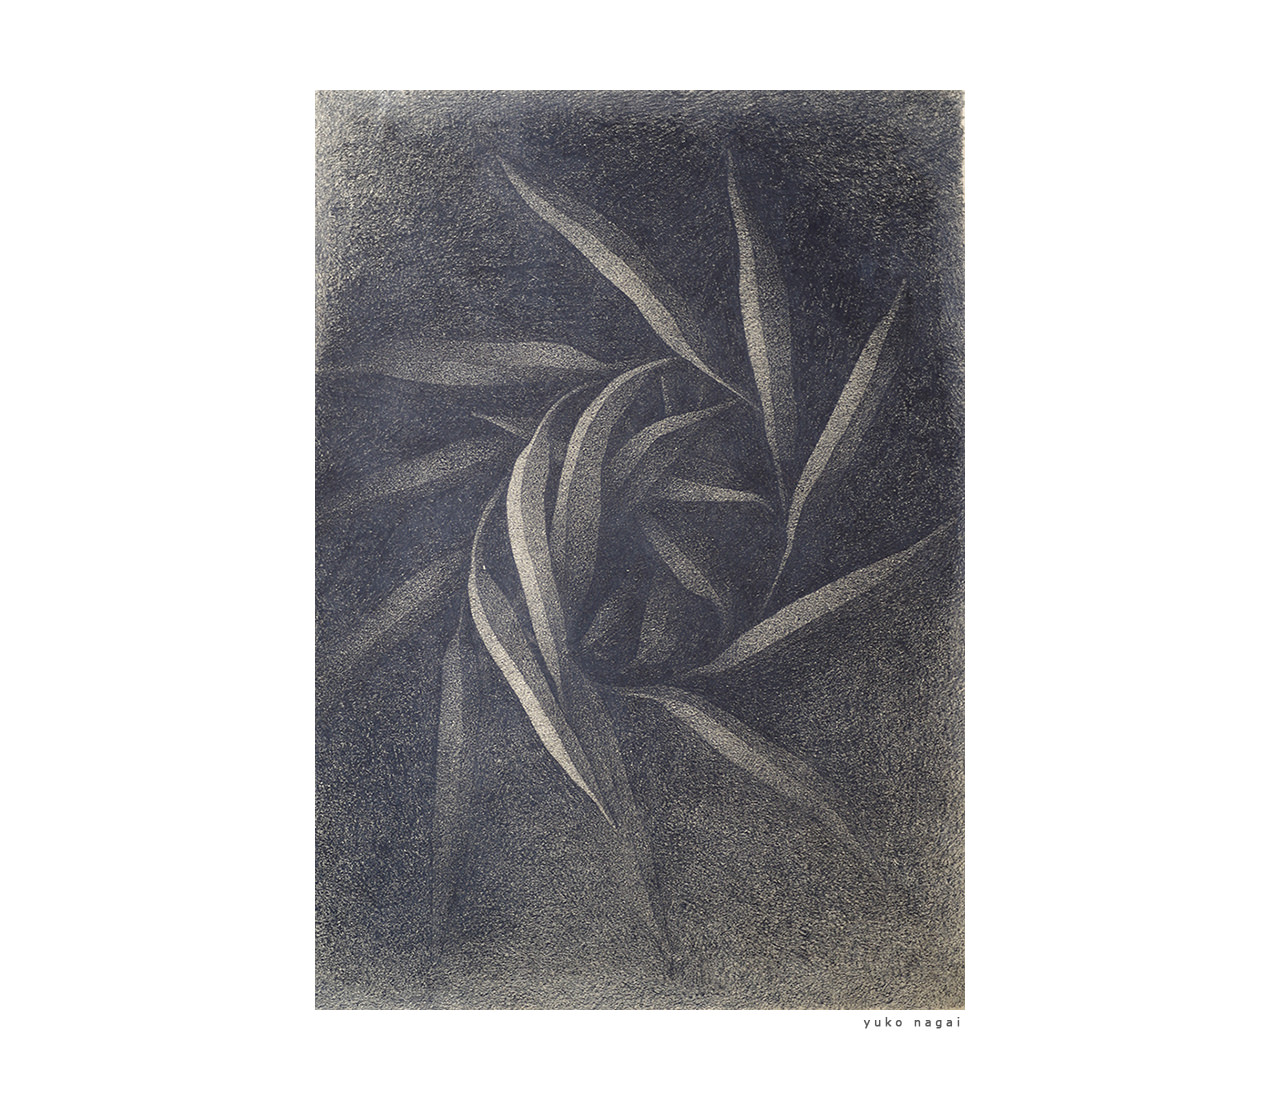 A pencil drawing of a wreath.